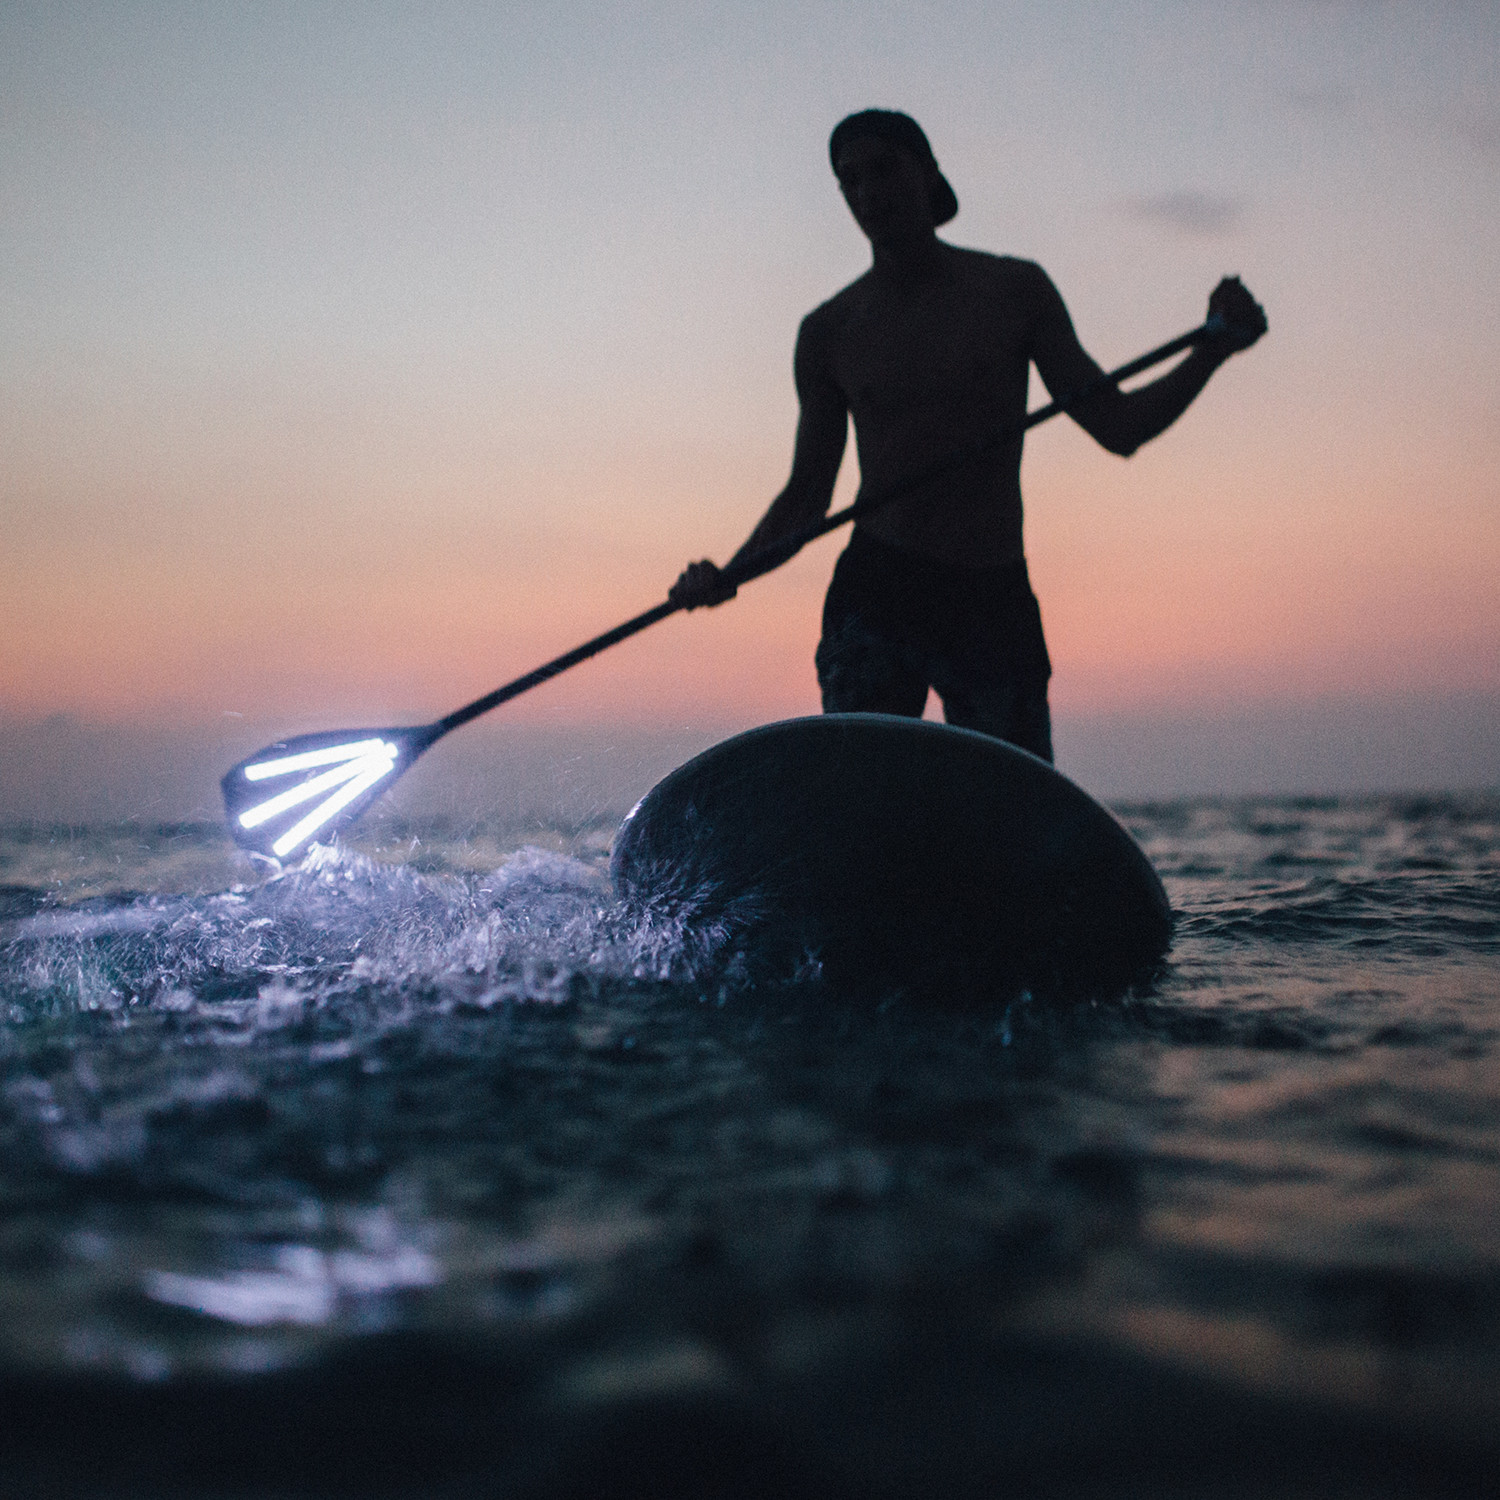 boca-night-stand-up-paddle.jpg